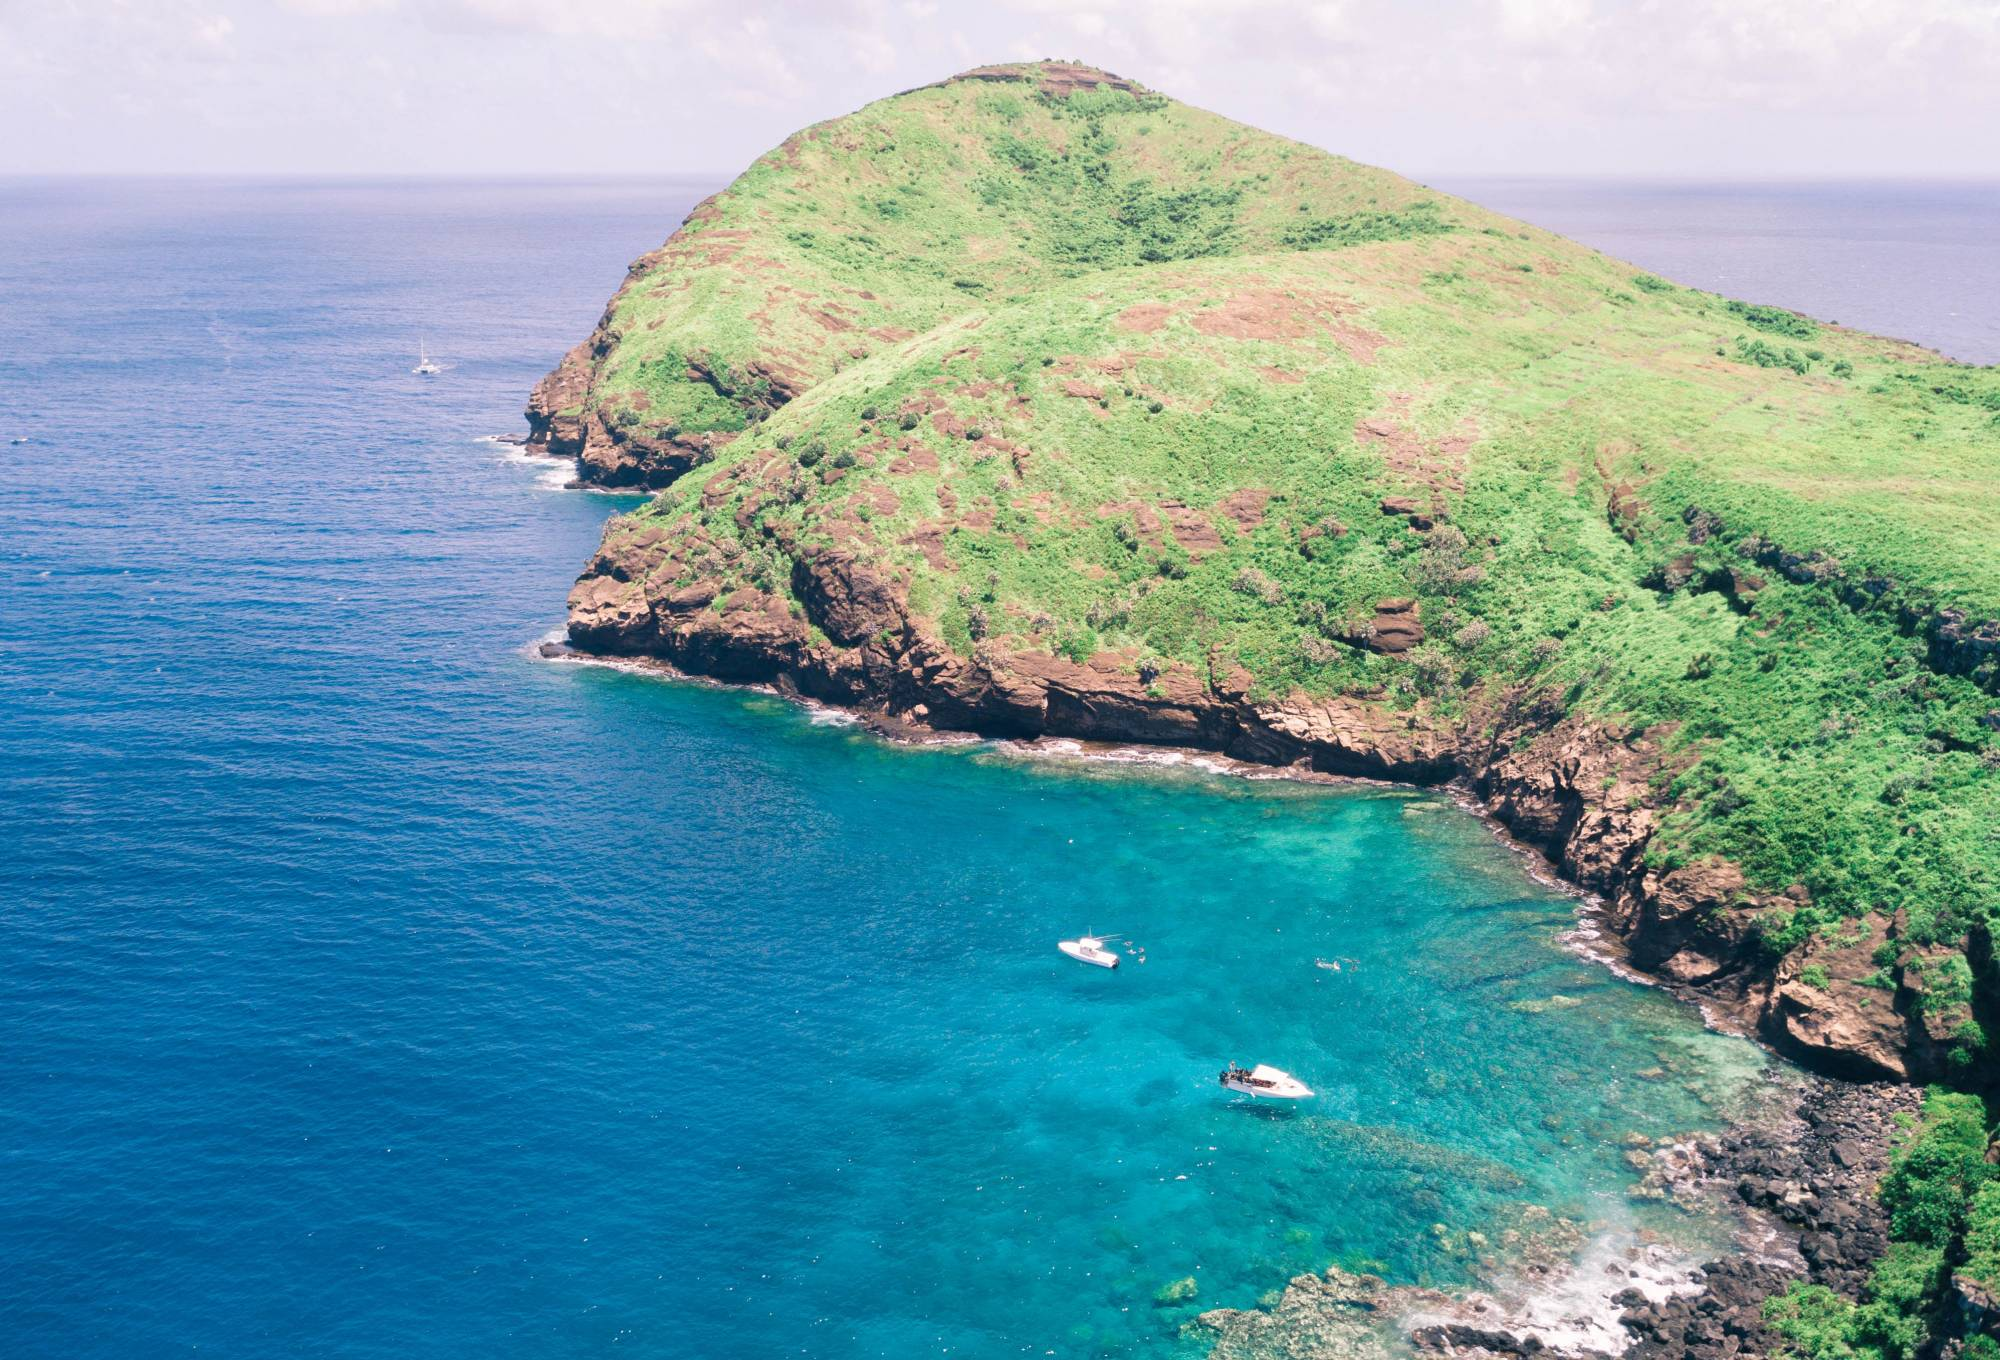 Discover Scuba Diving on Coin de Mire Island